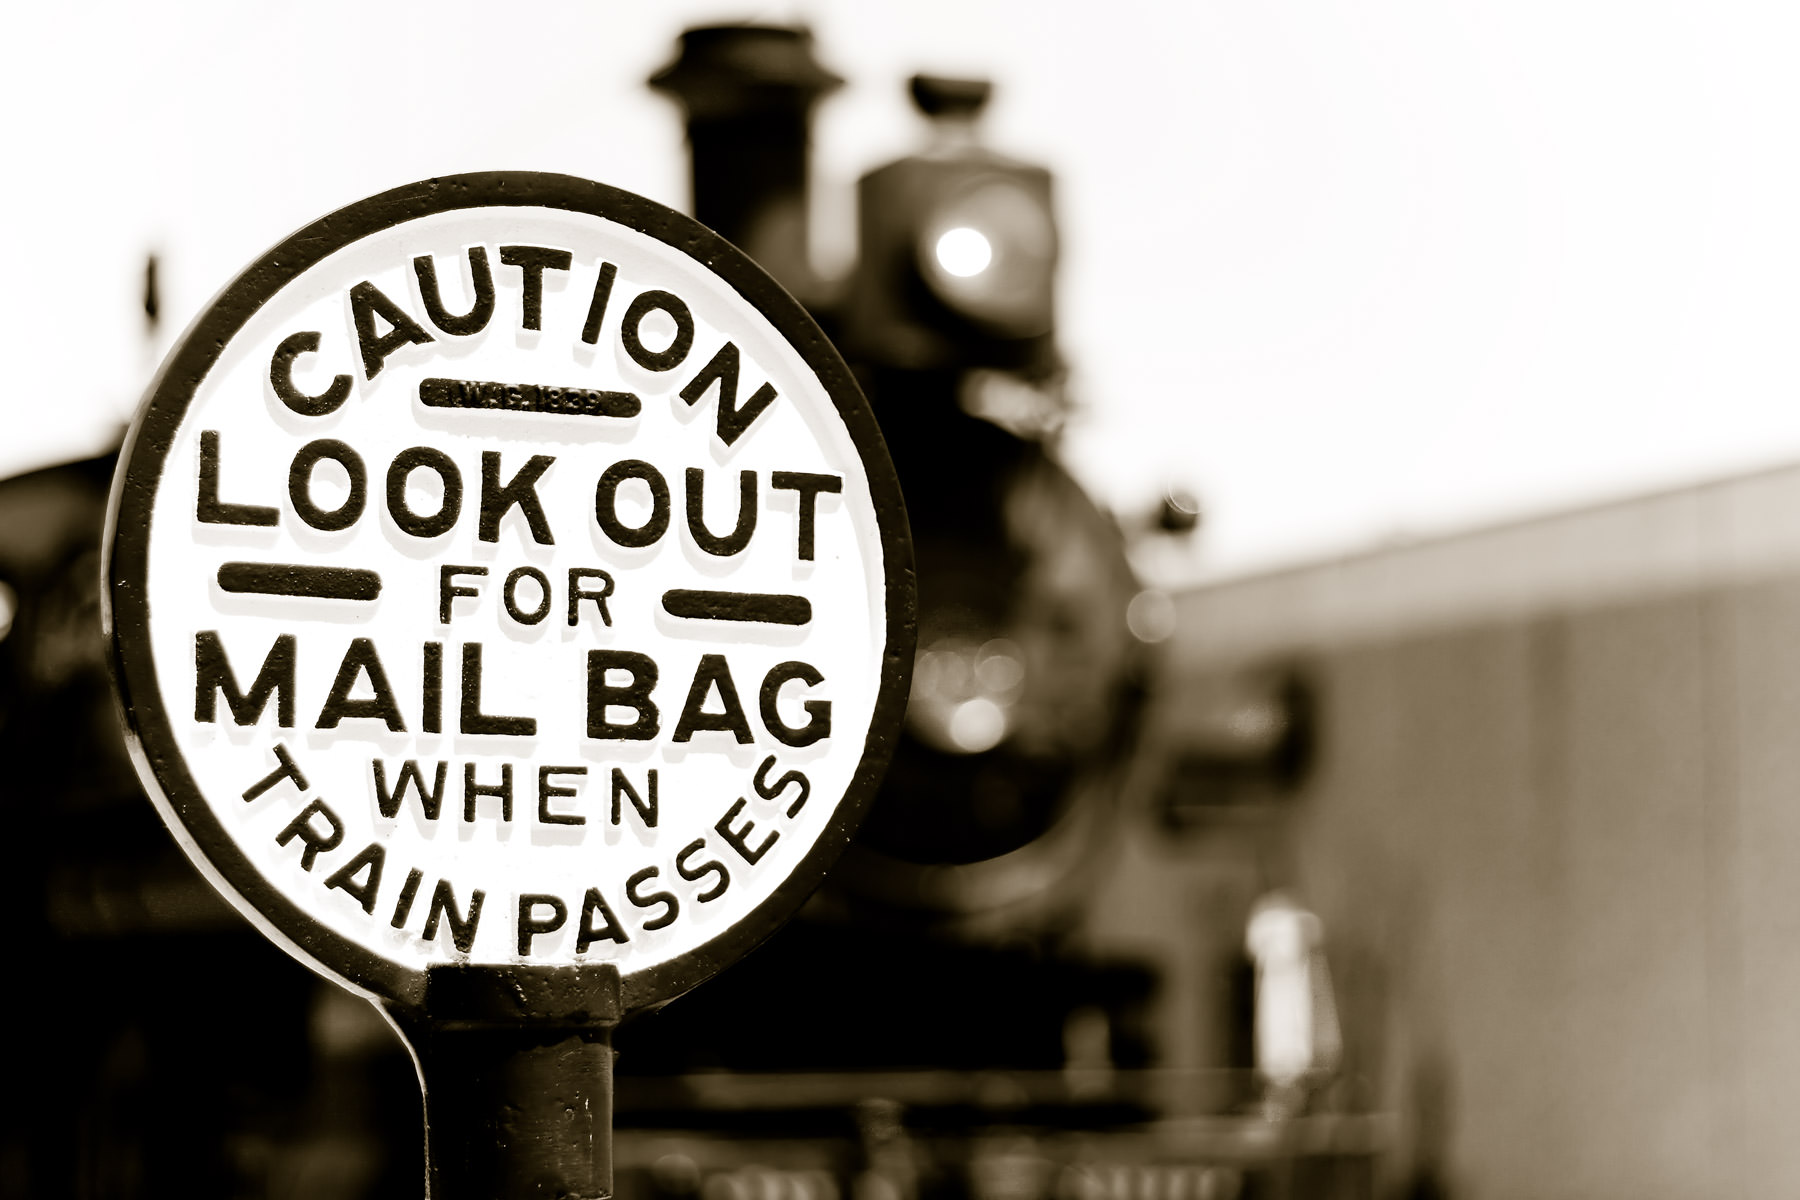 A mail sign at Grapevine Vintage Railroad, Grapevine, Texas.